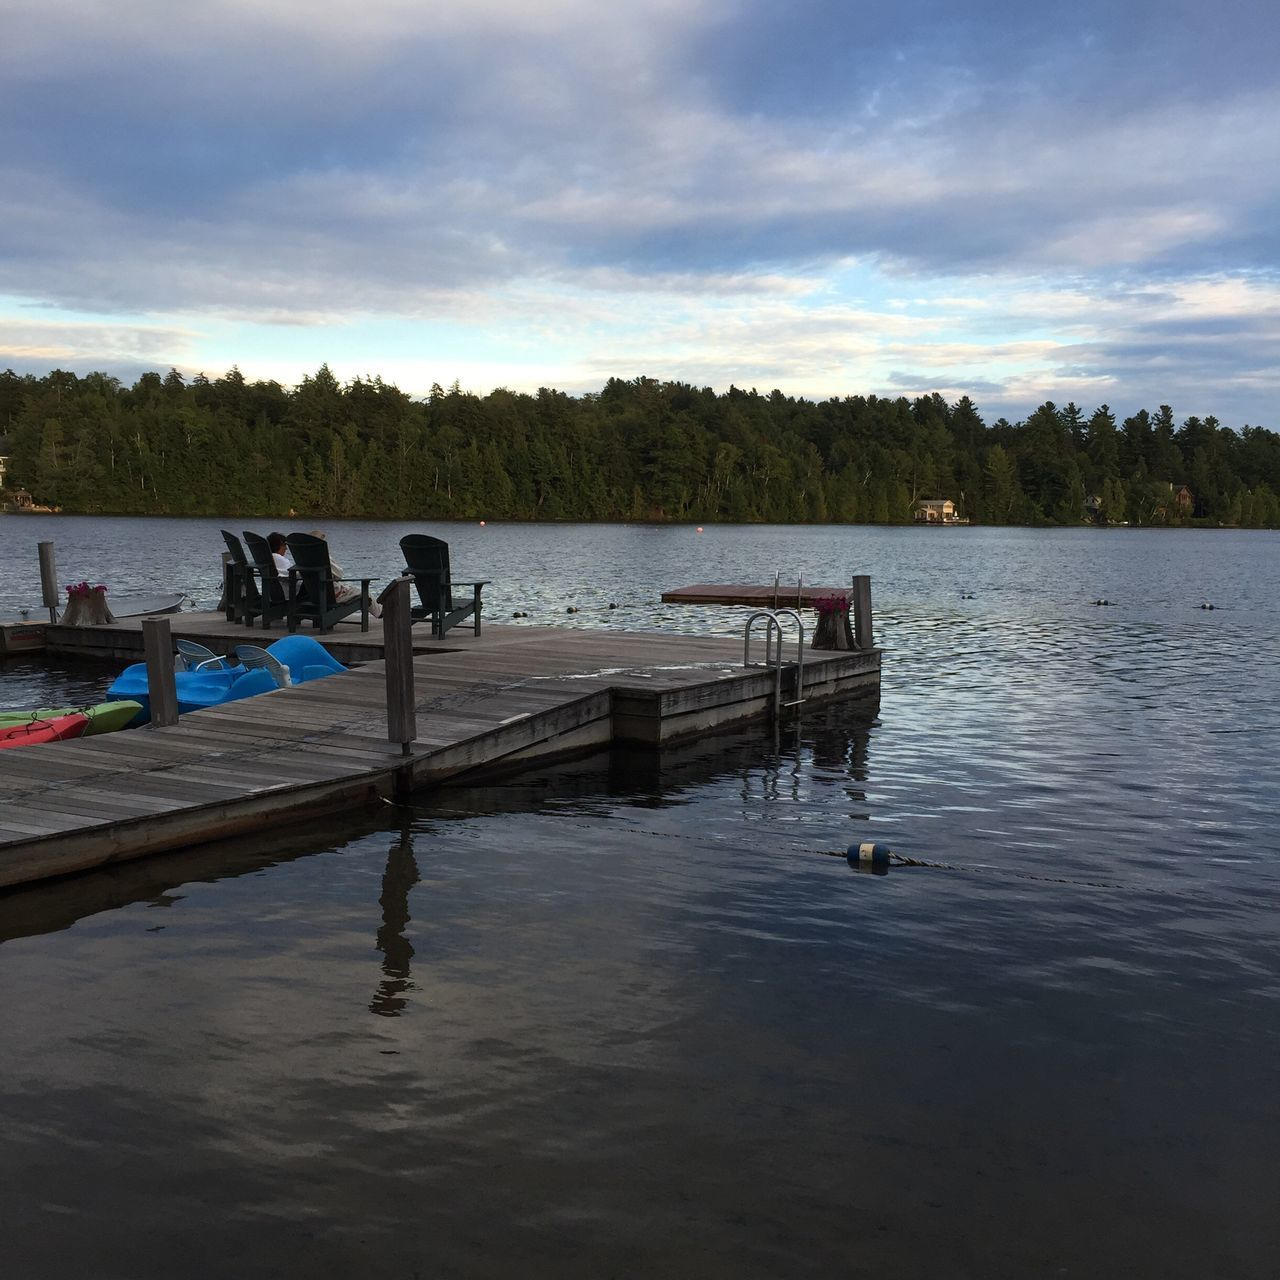 Lake Placid Mirror Lake Lake Dock Water Resort Relax Water View Adirondack Mountains Nature Sky Tranquil Scene Tranquility Beauty In Nature Cloud - Sky Scenics Tree Outdoors Nautical Vessel Day No People